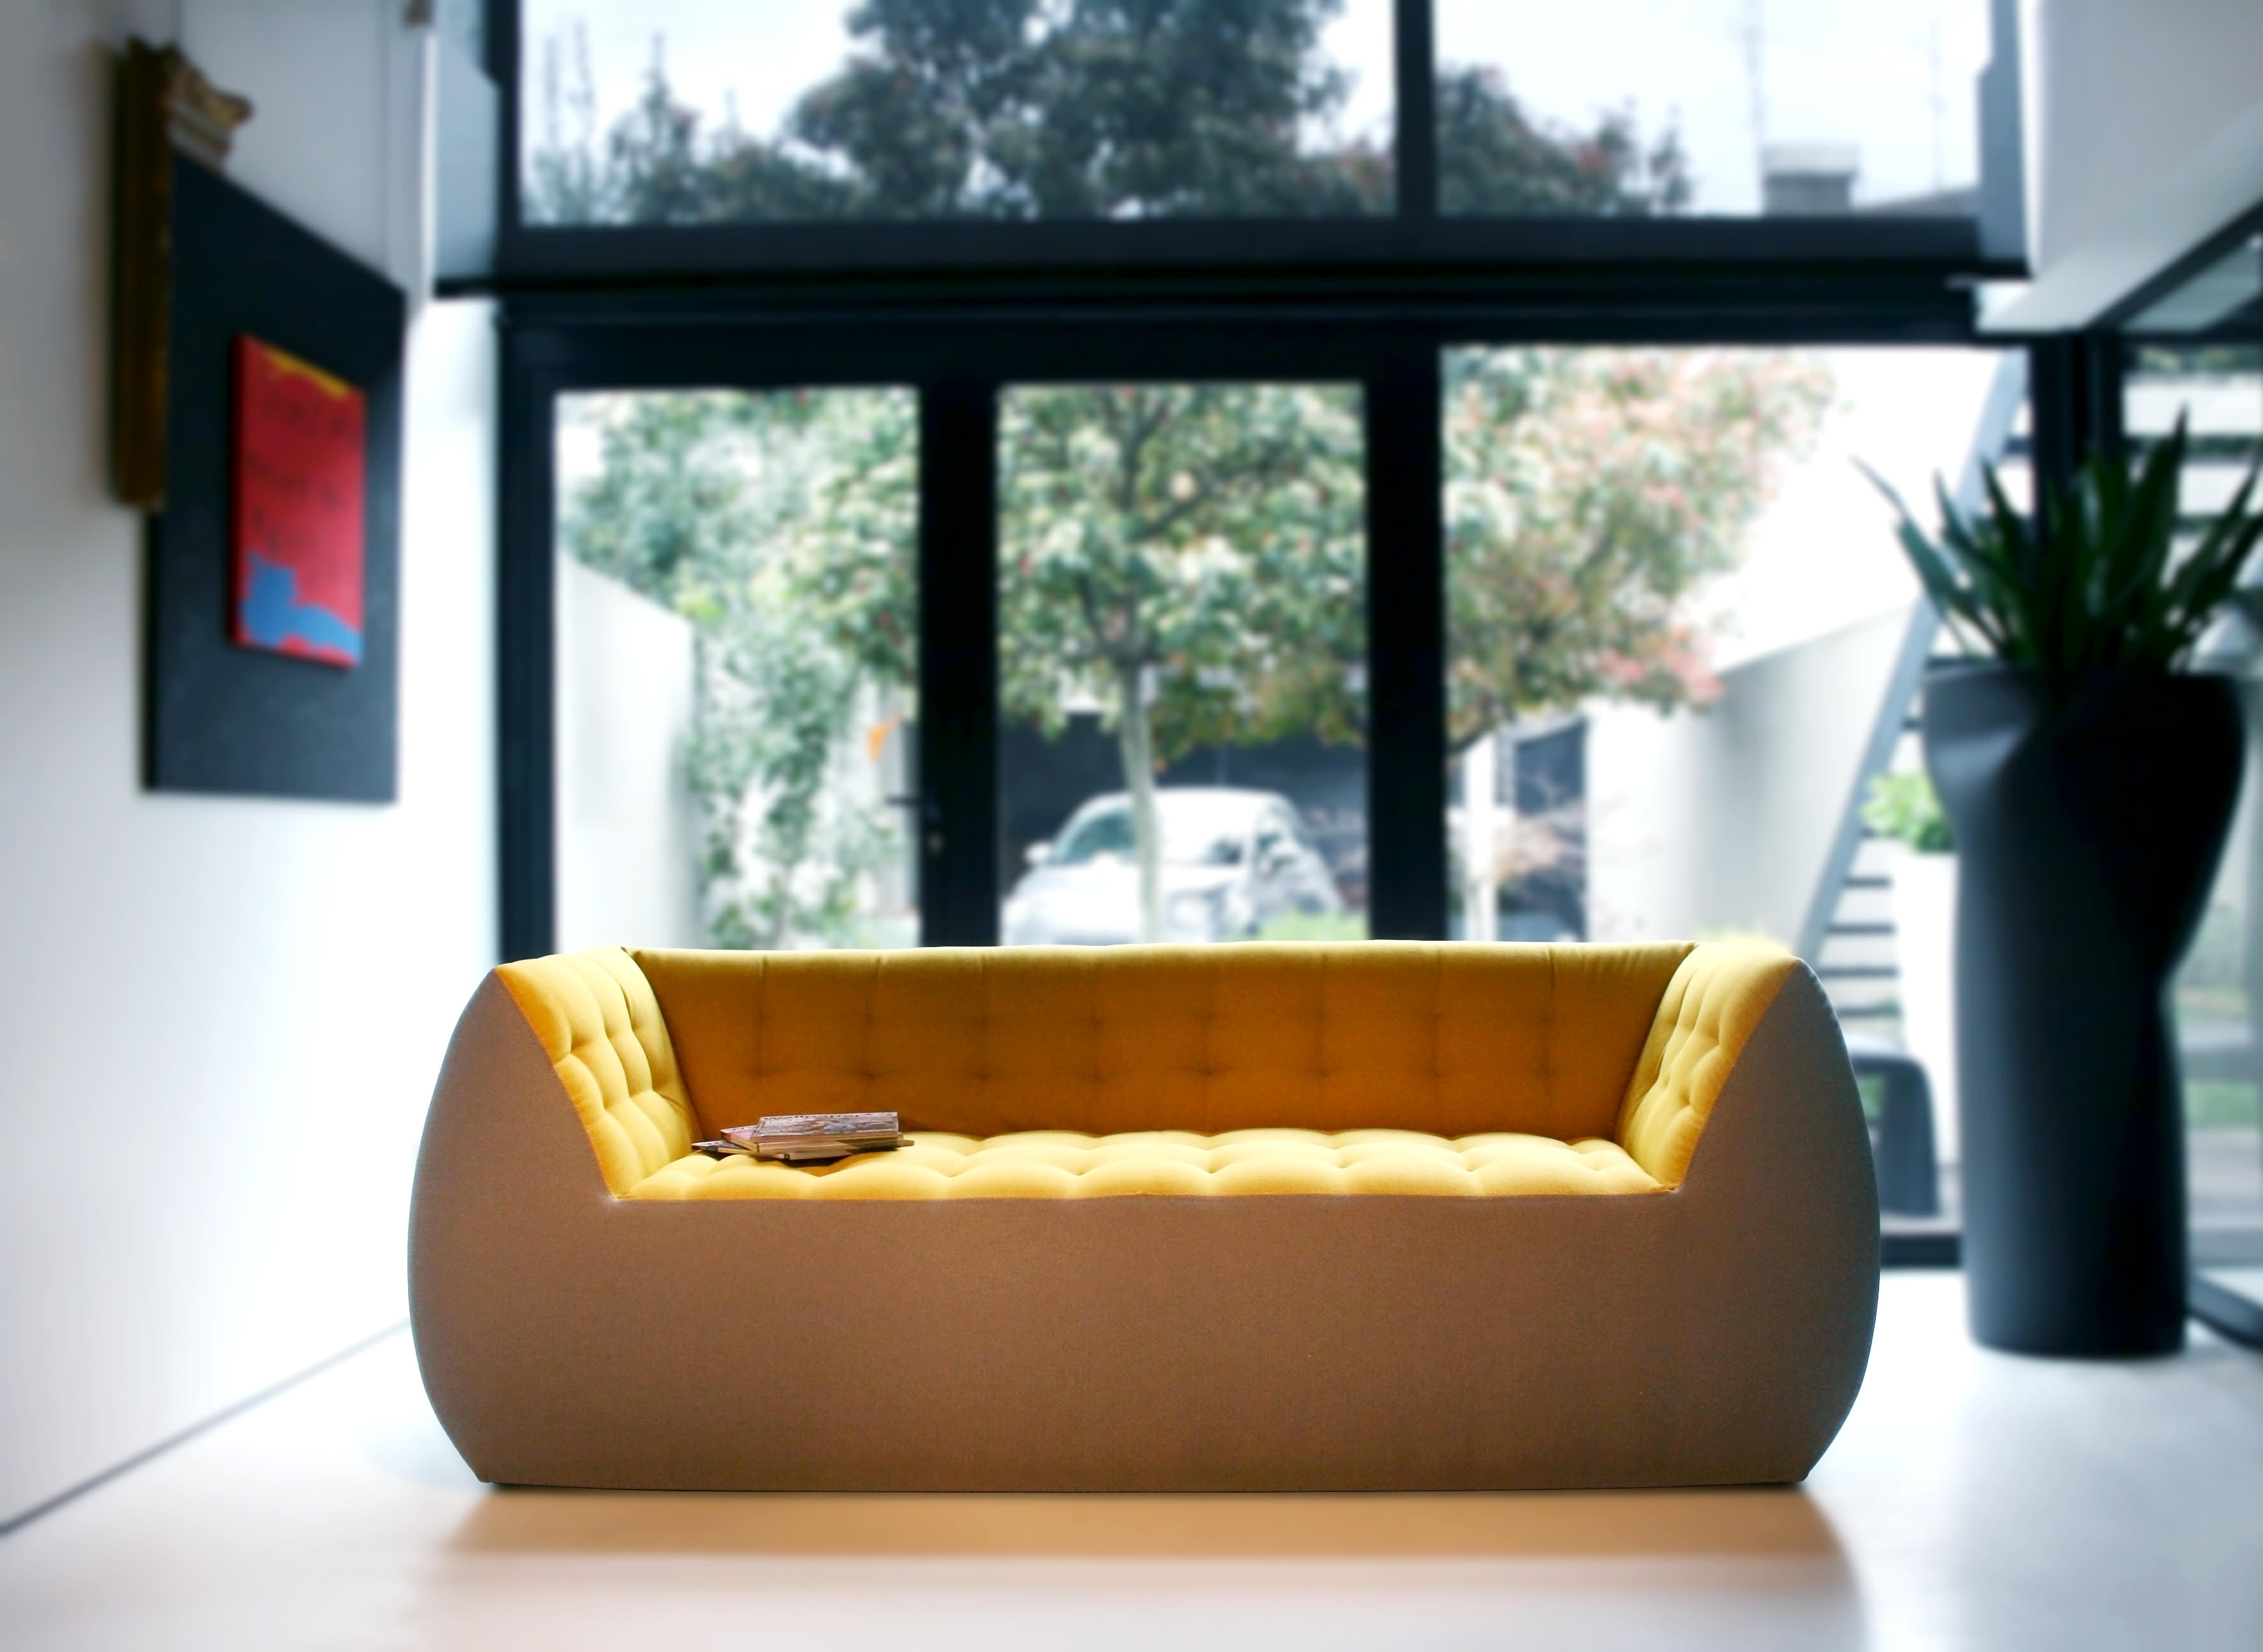 Coziness was Marco Serracca number one priority when he designed Spongy. The chromatic contrast between the inside and outside of the sofa brings out its superior comfort and (...)